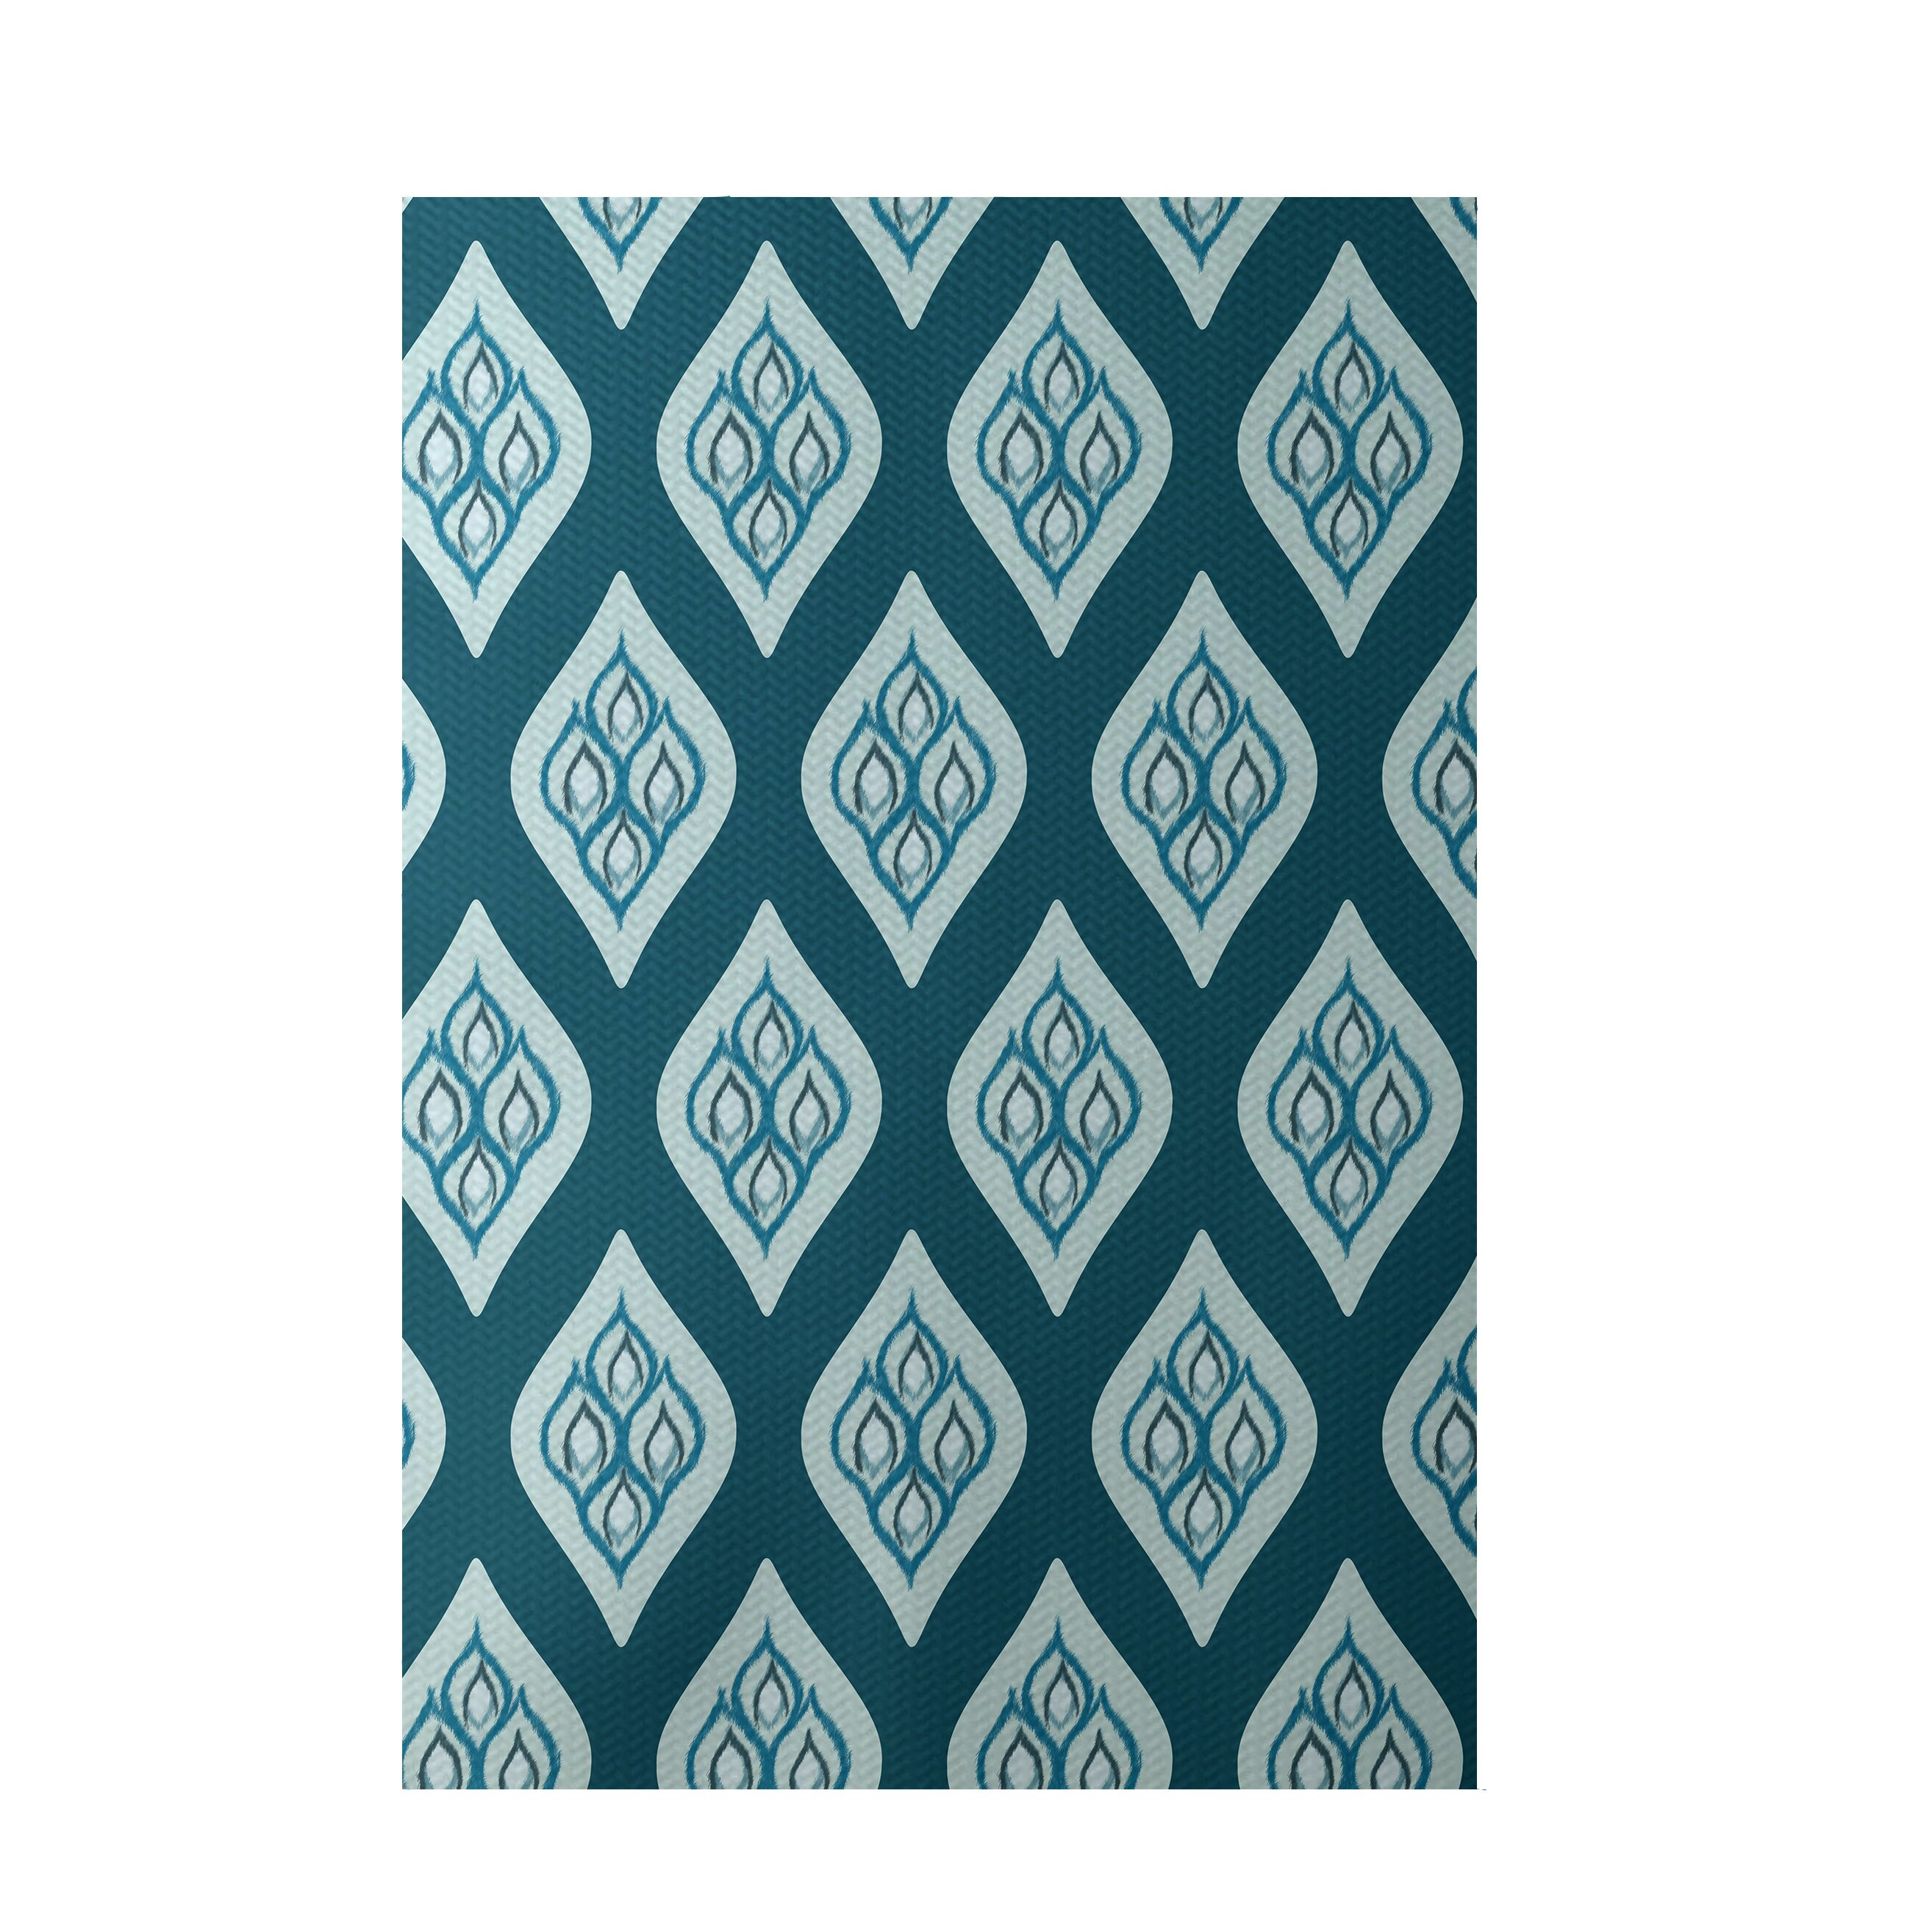 Teal Floral Area Rug: E By Design Floral Teal Indoor/Outdoor Area Rug & Reviews